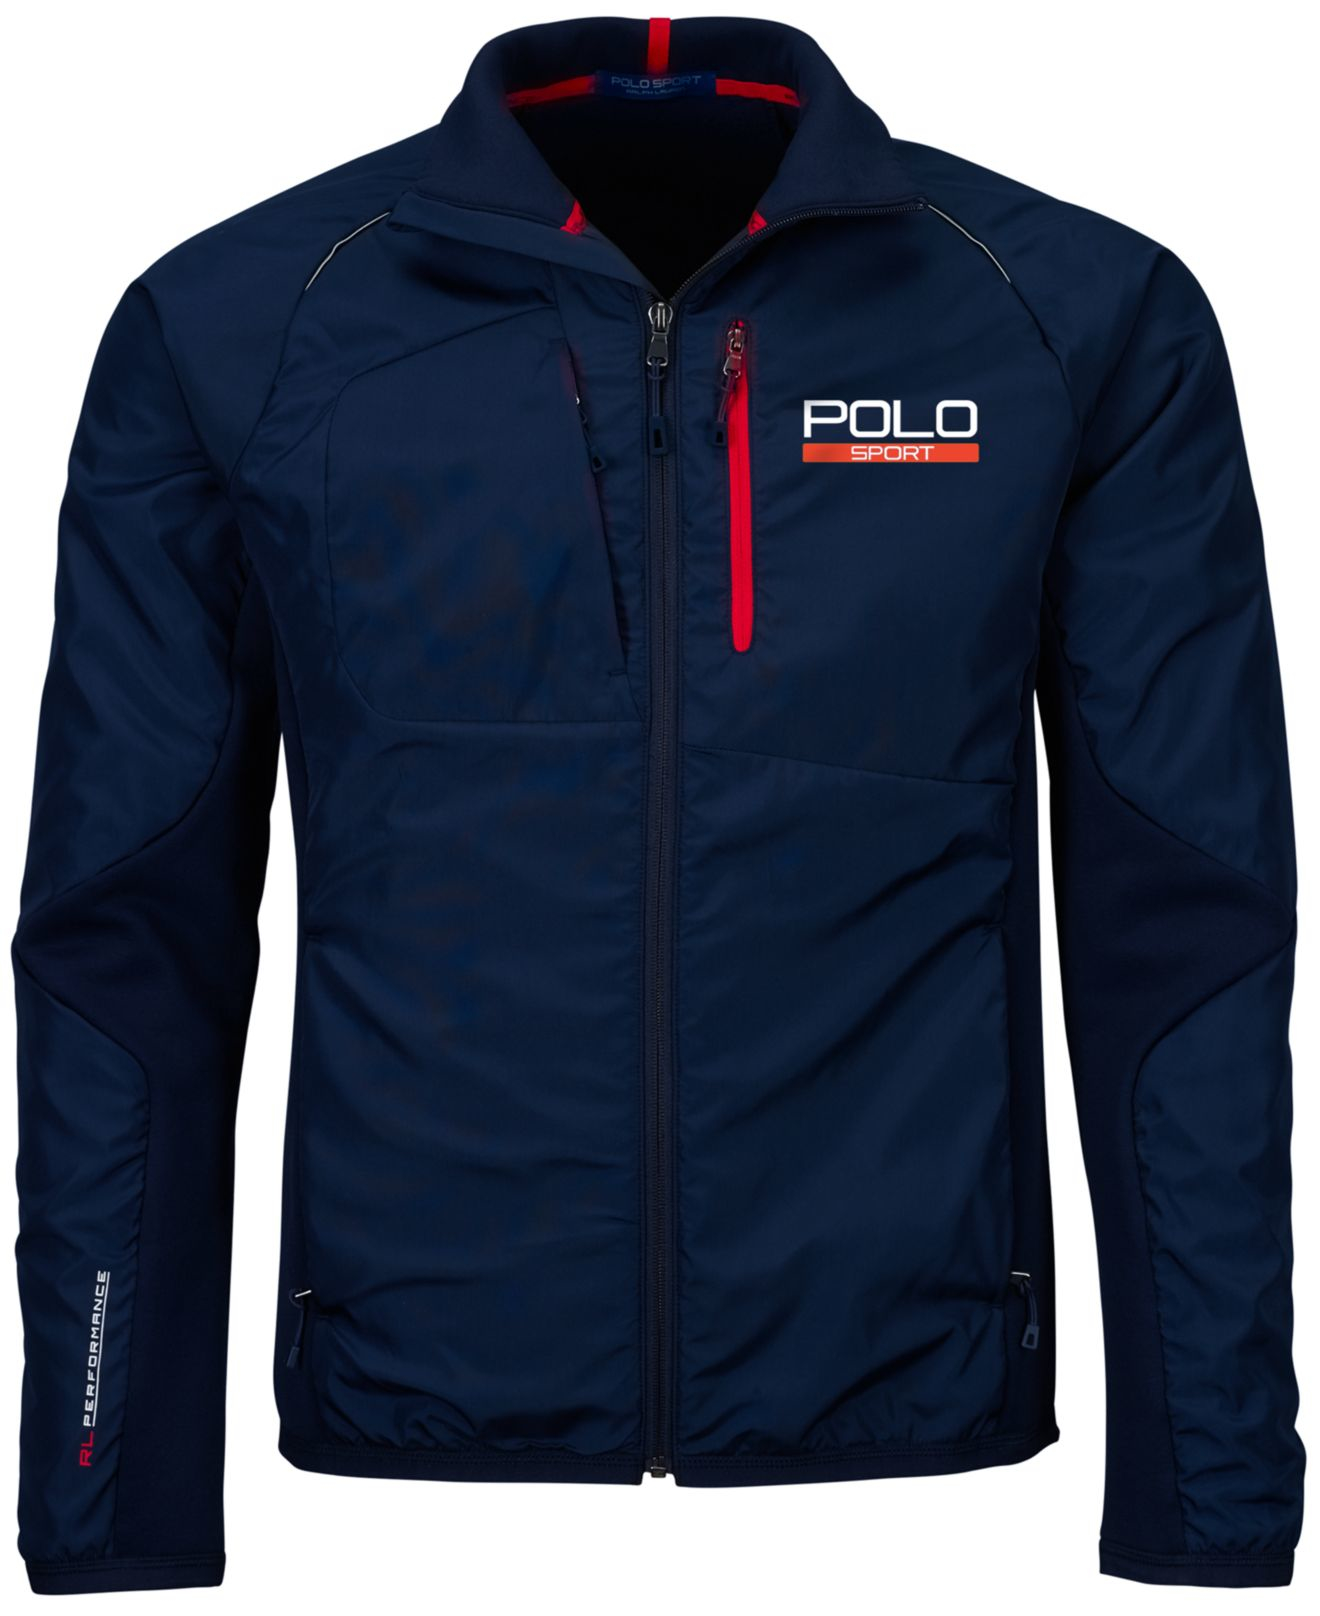 lyst polo ralph lauren polo sport hybrid tech jacket in. Black Bedroom Furniture Sets. Home Design Ideas